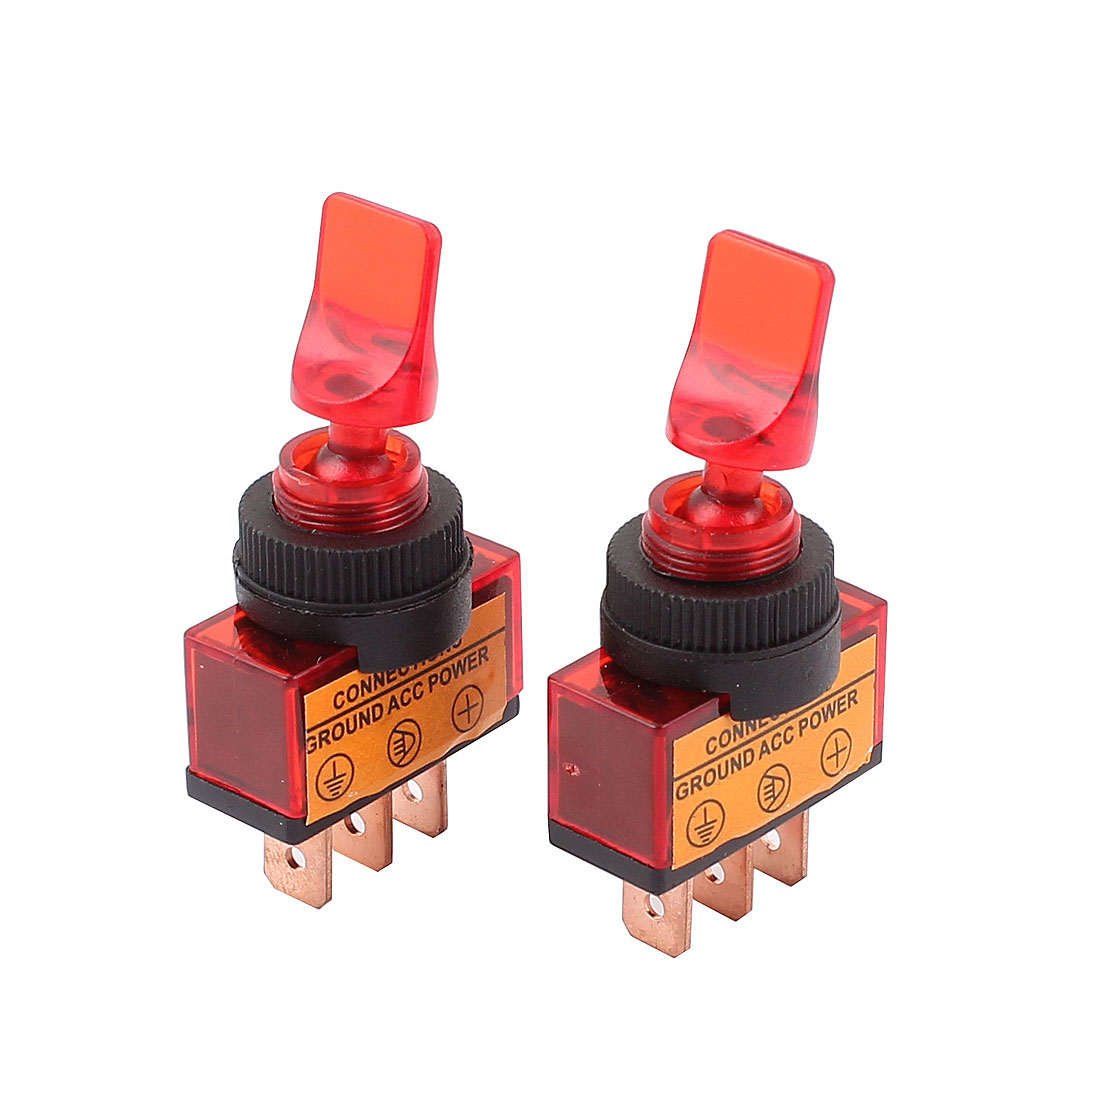 2 Pcs DC 12V 20A 12mm Thread Panel Mount SPDT 2-Position ON/OFF Red Toggle Switch